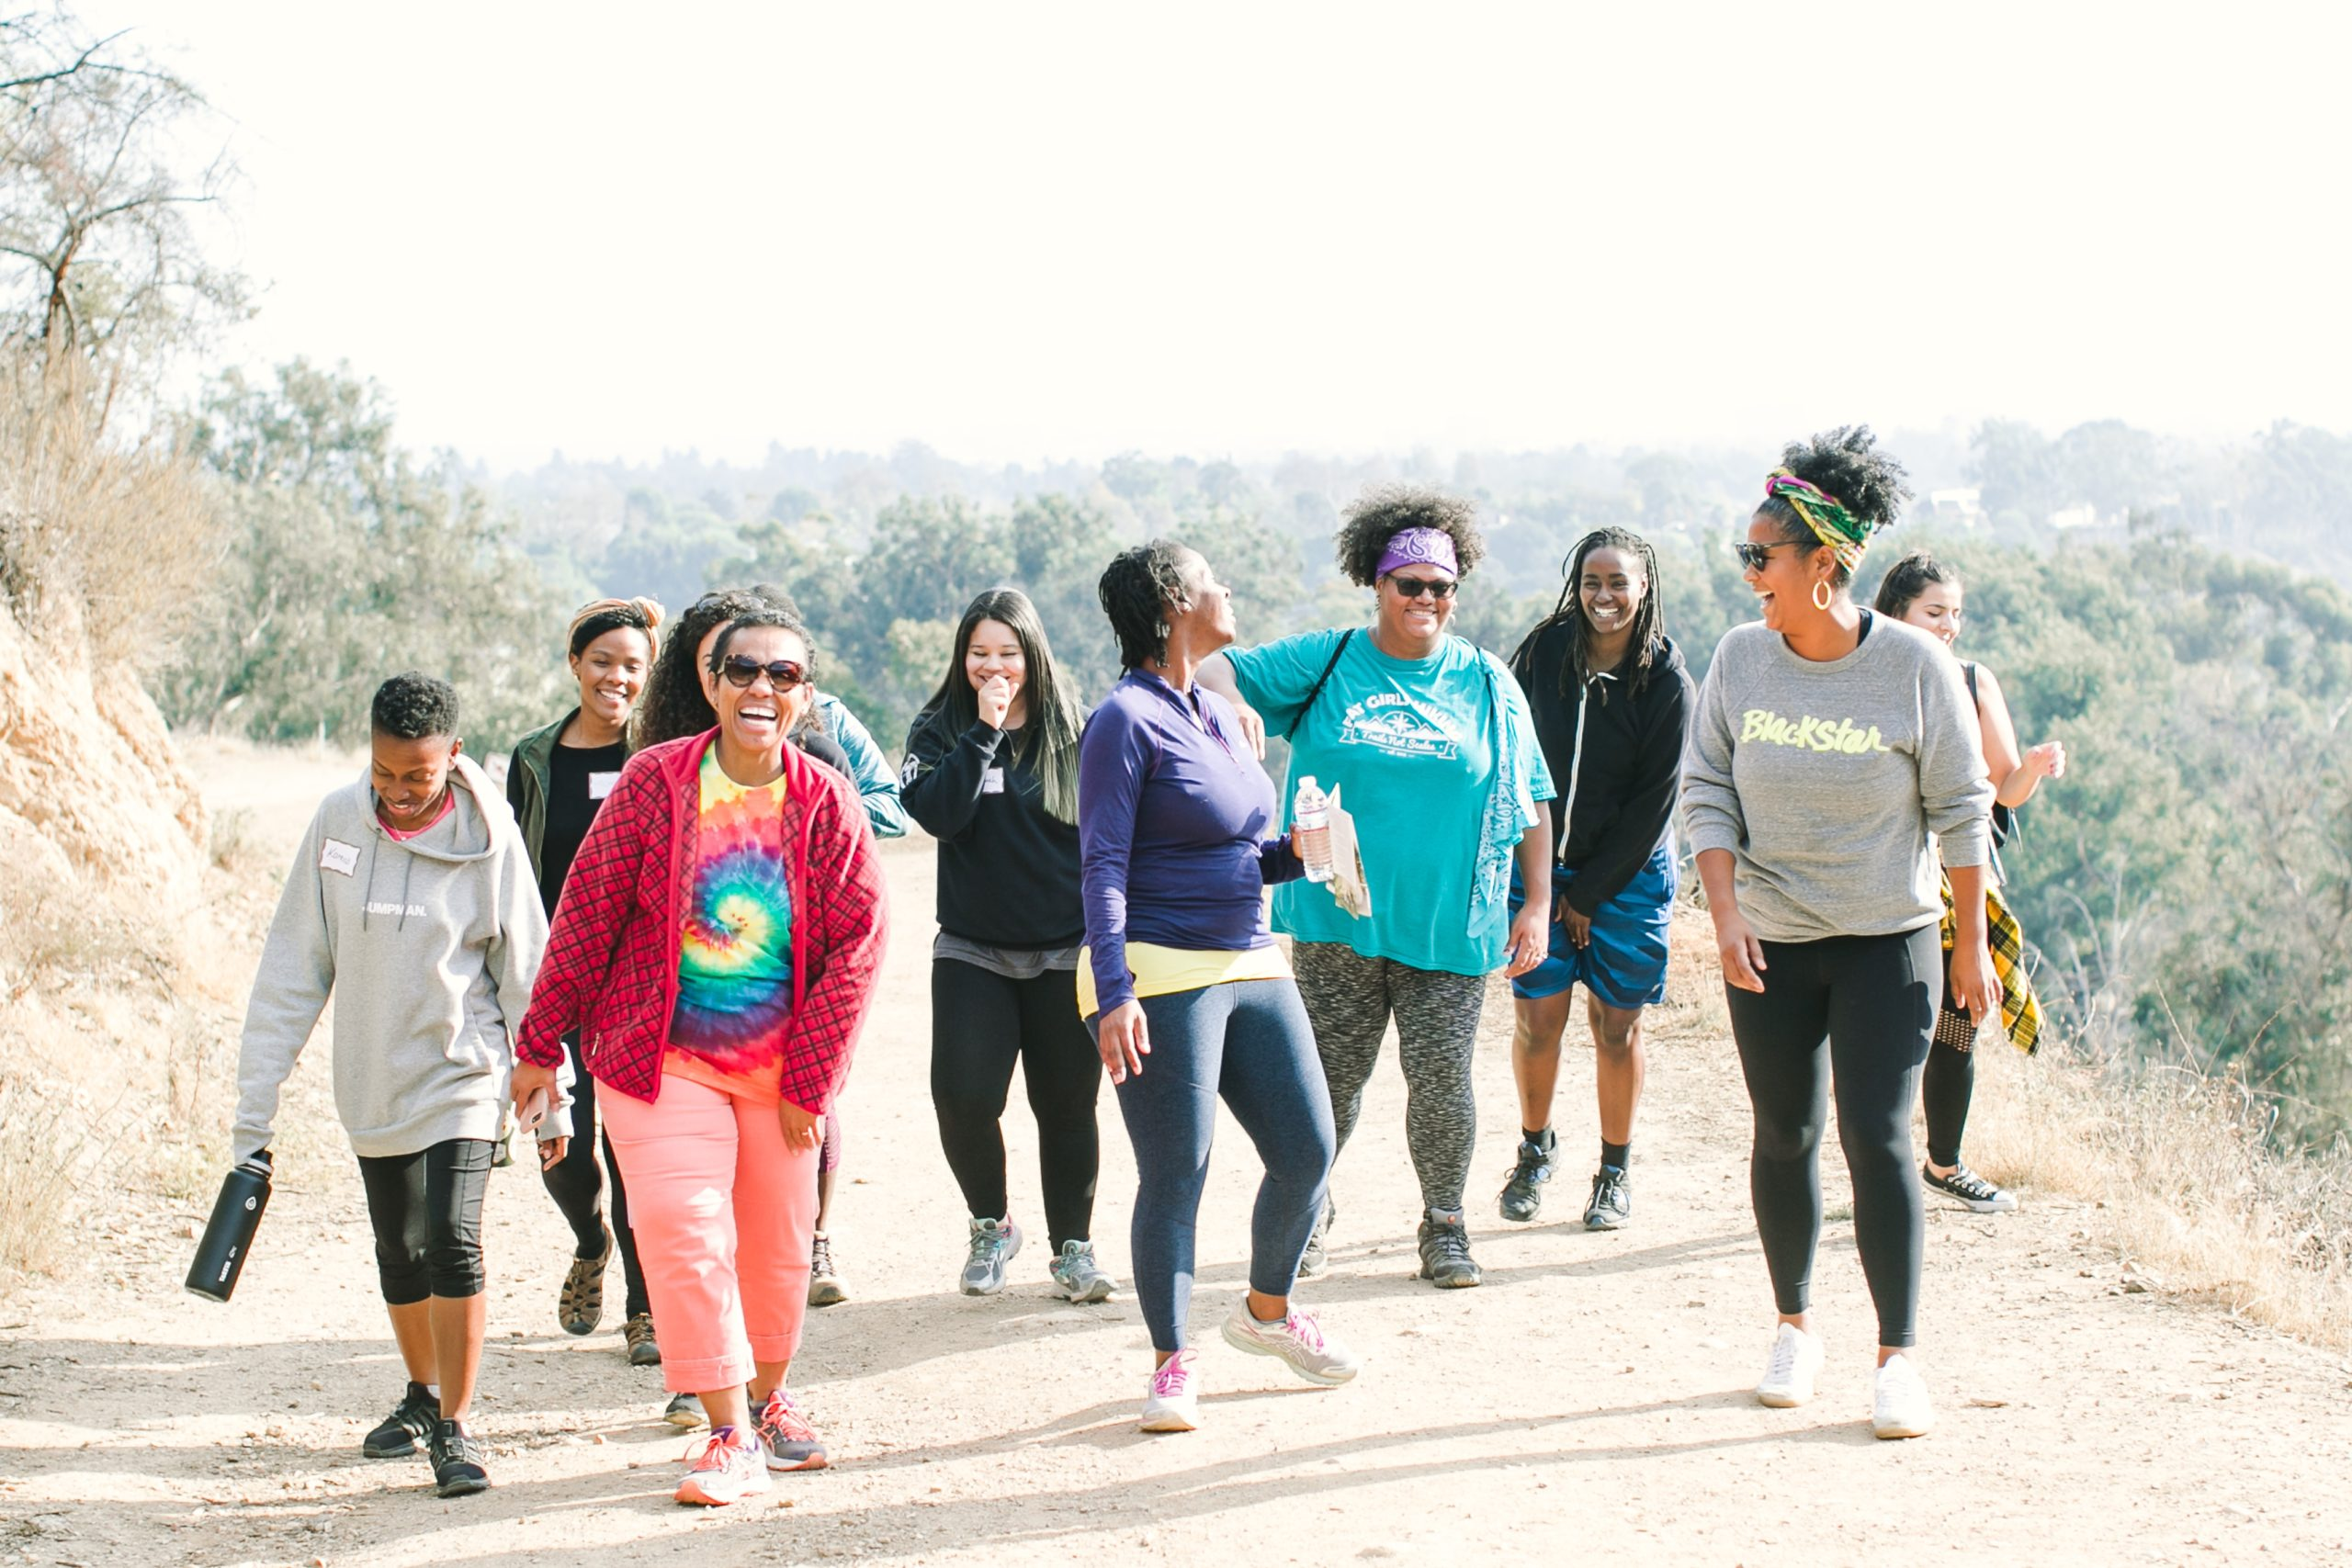 How Color Outside Empowers Women of Color Through Outdoor Adventure - The Trek